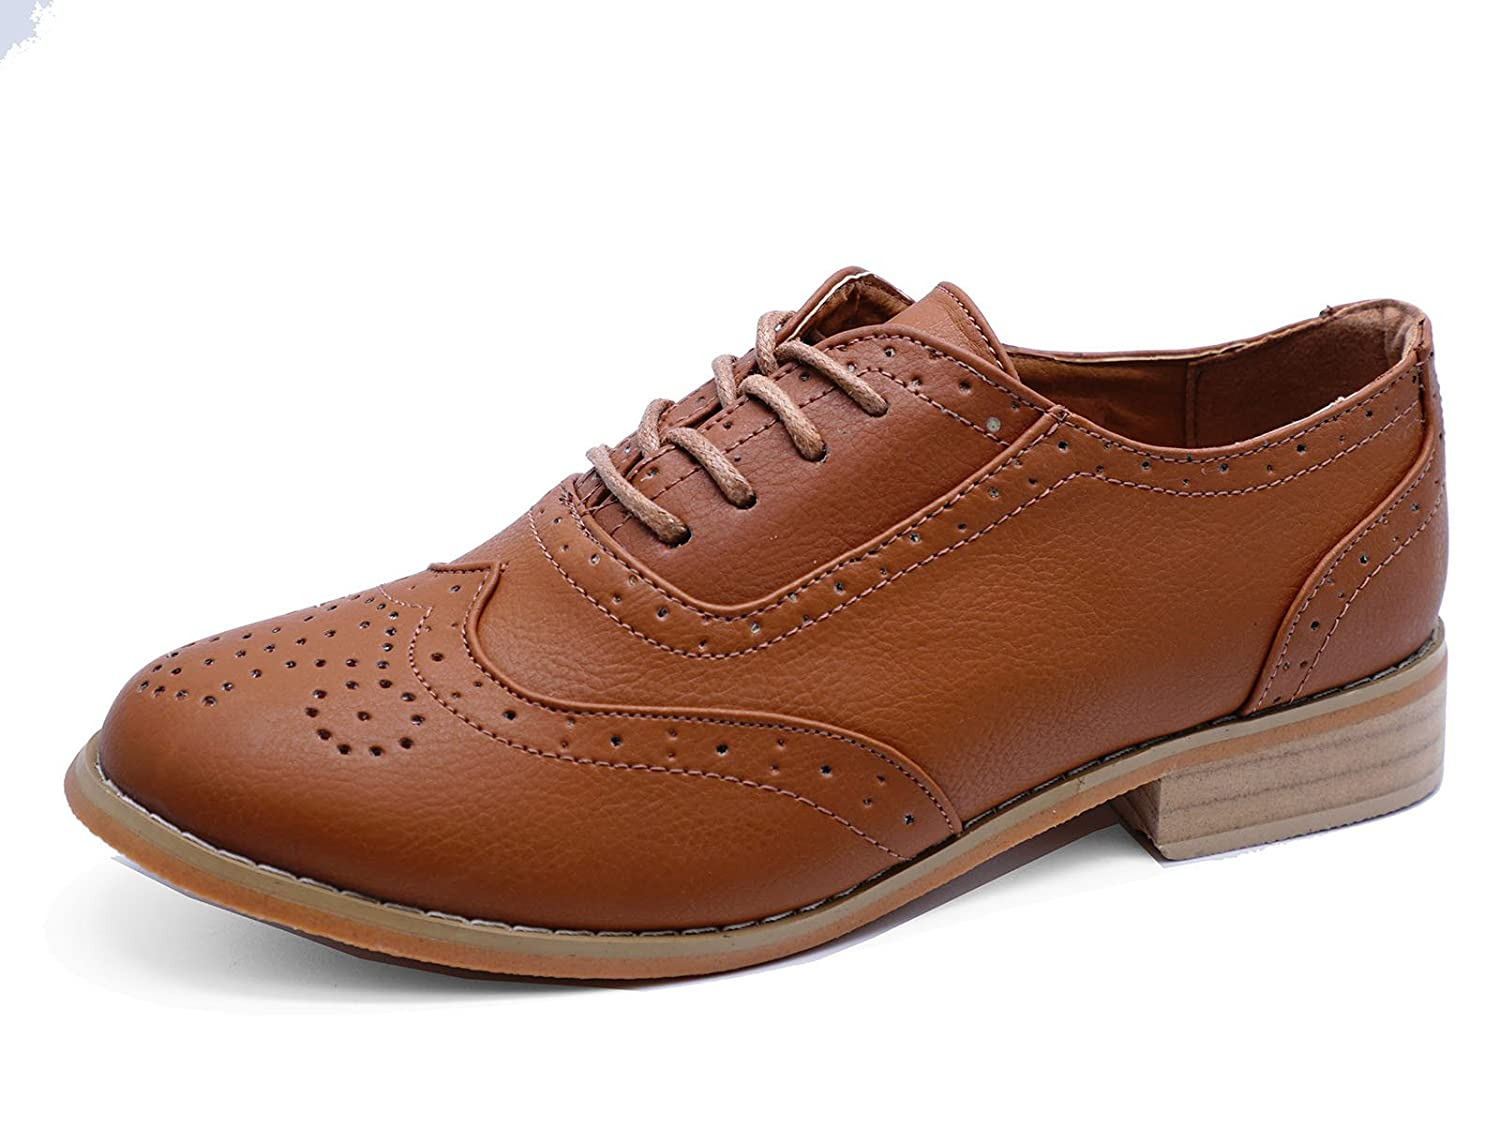 4447aed50f4 Ladies Flat Tan Oxford Brogues Smart Work Lace-Up Casual Comfy Shoes Sizes 3 -8